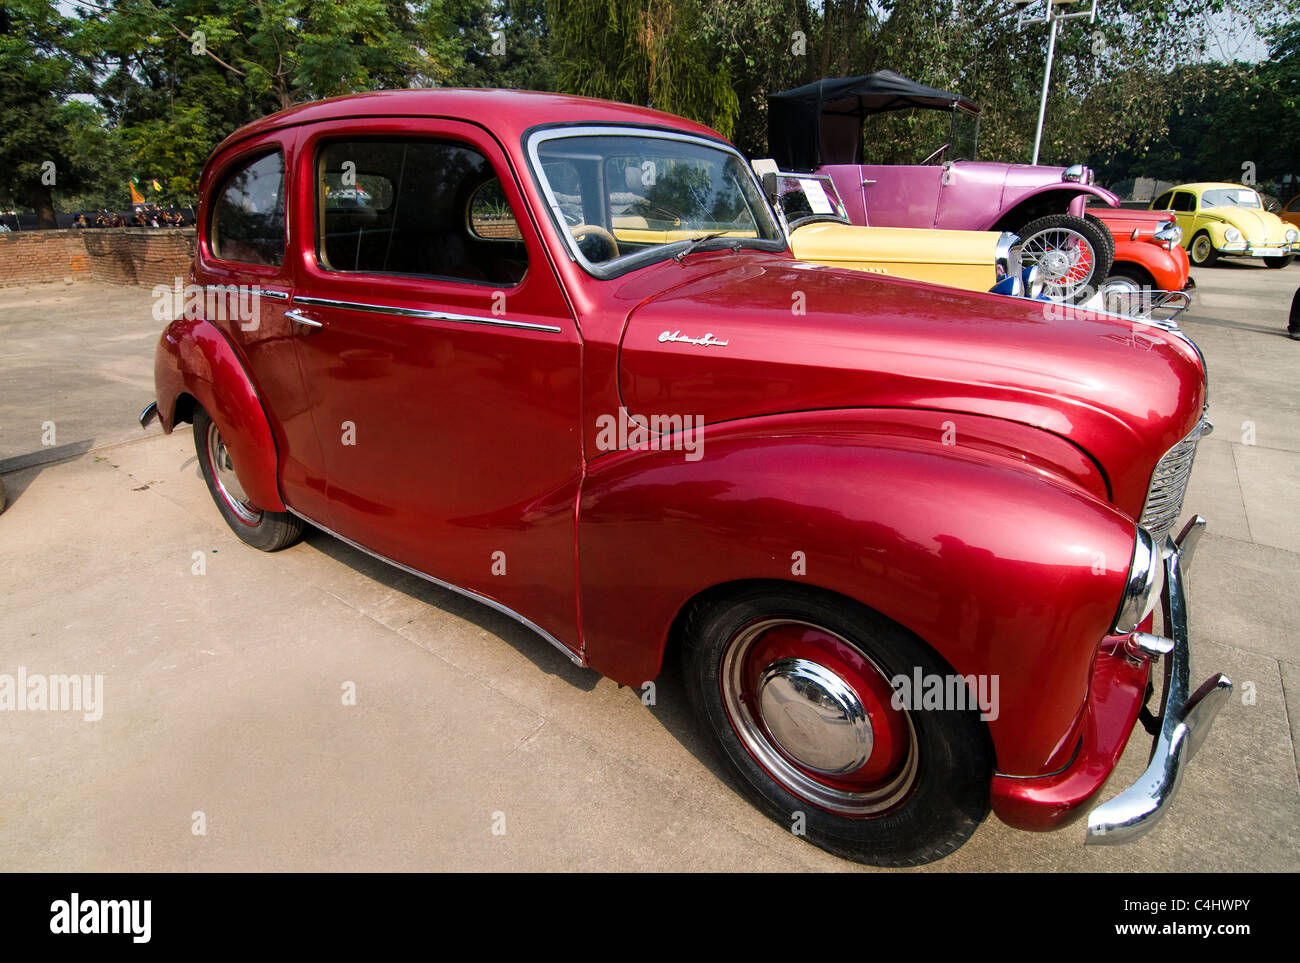 Old vintage cars on display during an antique car exhibition in ...